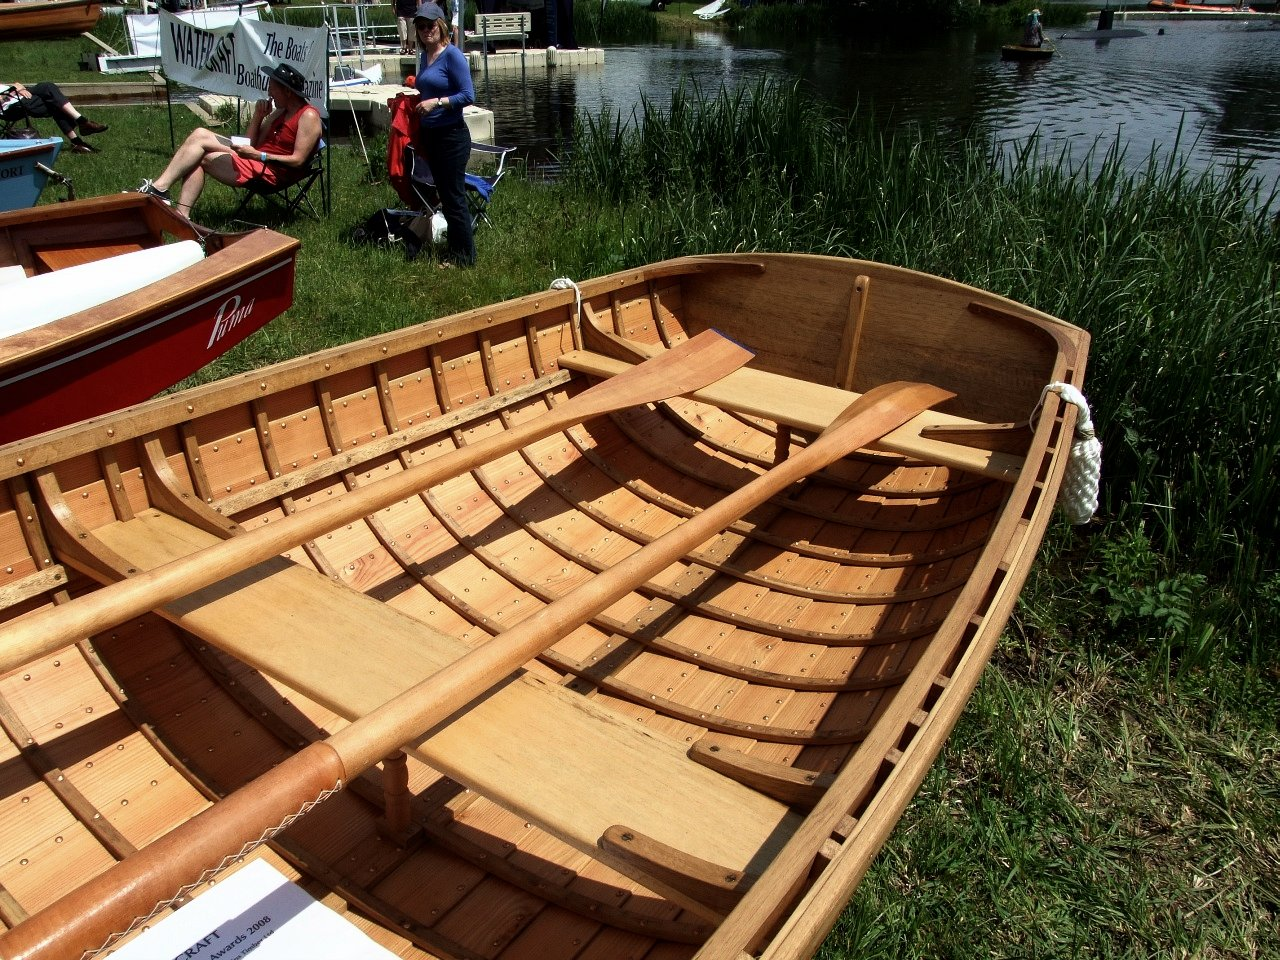 Building classic small craft for Building classic small craft